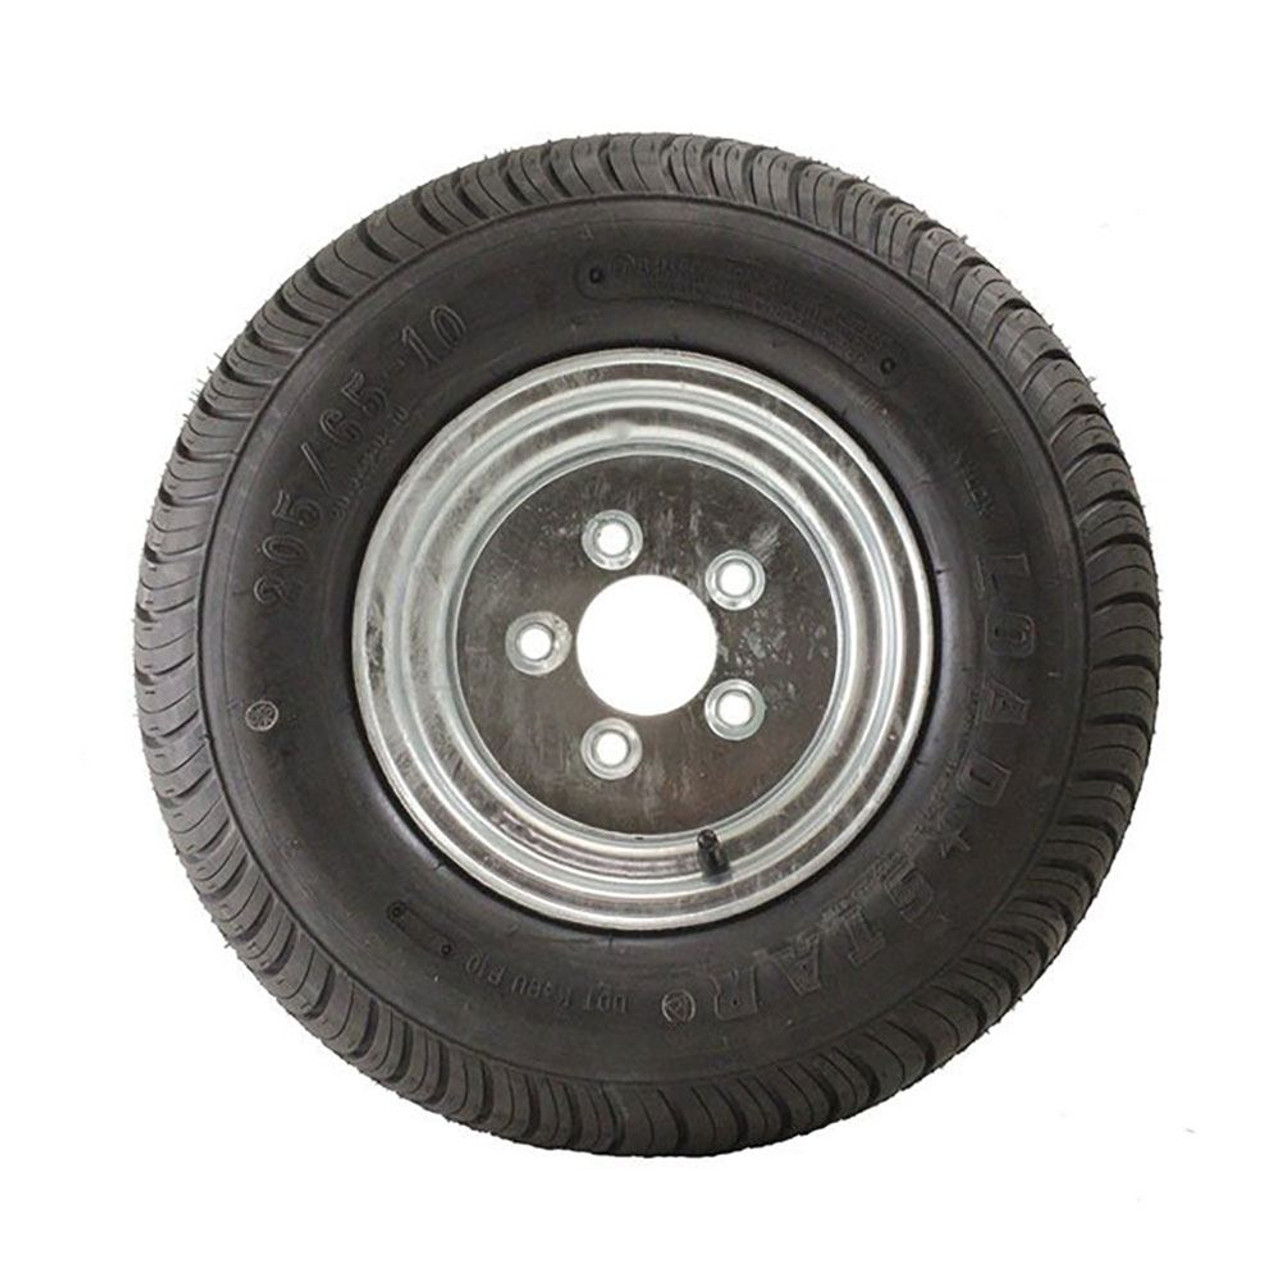 Load Range D Tire mounted on 5 bolt GALVANIZED steel rim D.O.T Approved 205-65-10//20.5-8.0-10 // M.O.T